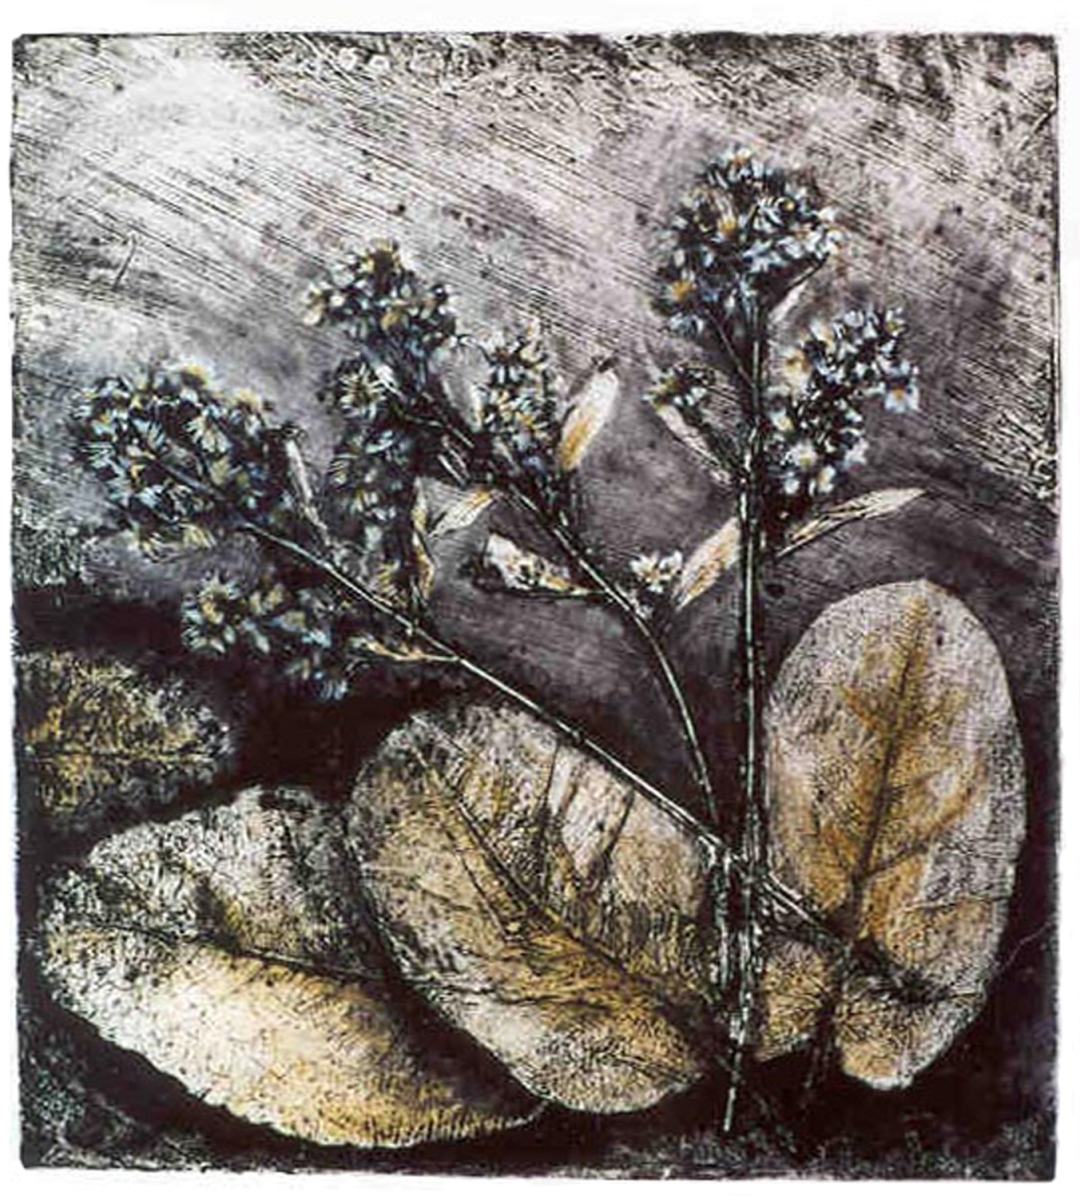 Jackie Zagon Monotype, collagraph,mixed media,  B&W with transparent oil paint washes  of gold and white.  Large leaves and small flowers were applied to a diagnally textured handmade printing plate.Thin gold metal frame, gold mat. (large view)